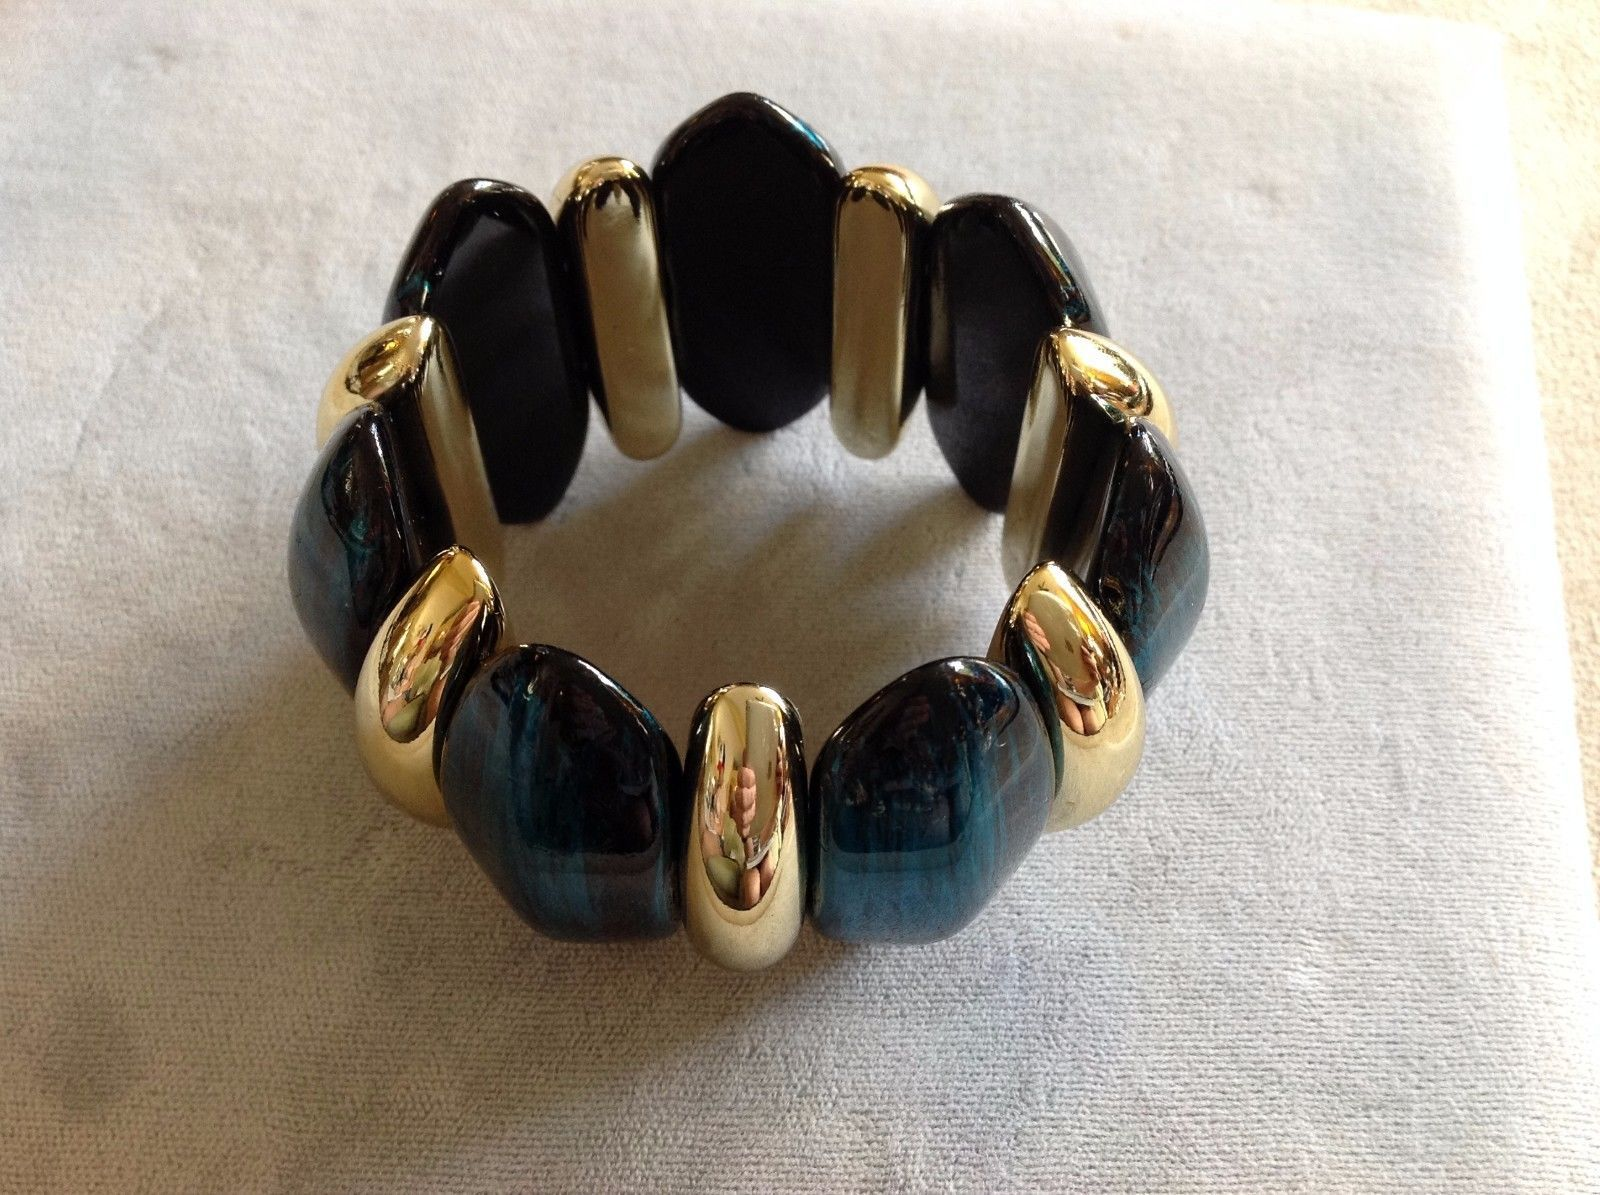 New Bracelet Gold Toned Dark Aqua Marine Separated by Gold Toned Dividers